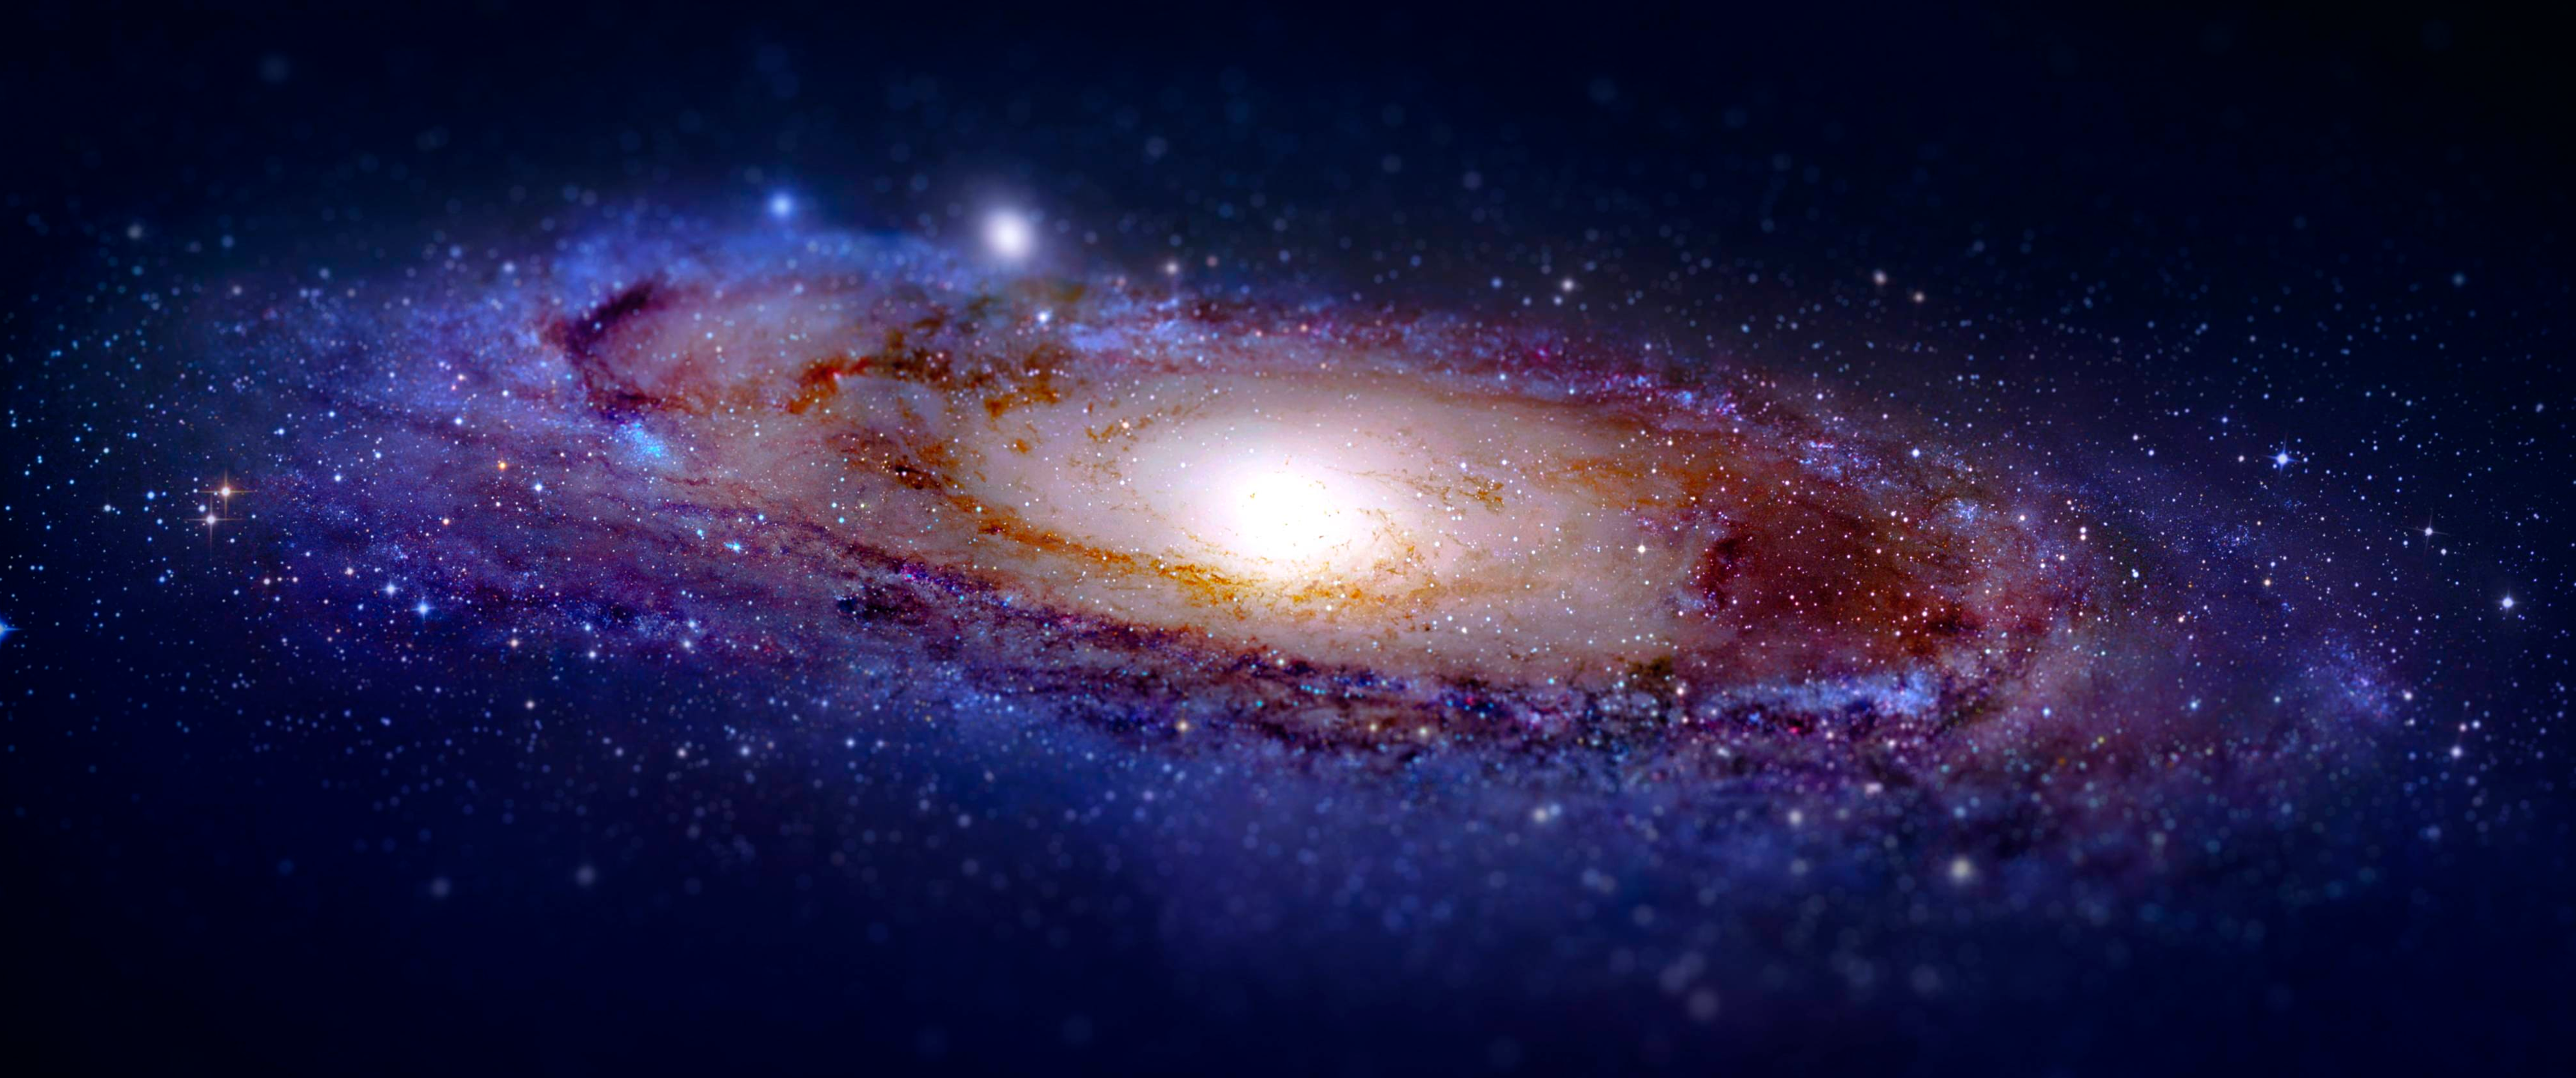 Free download Andromeda Galaxy Ultrawide Wallpaper by HD ...